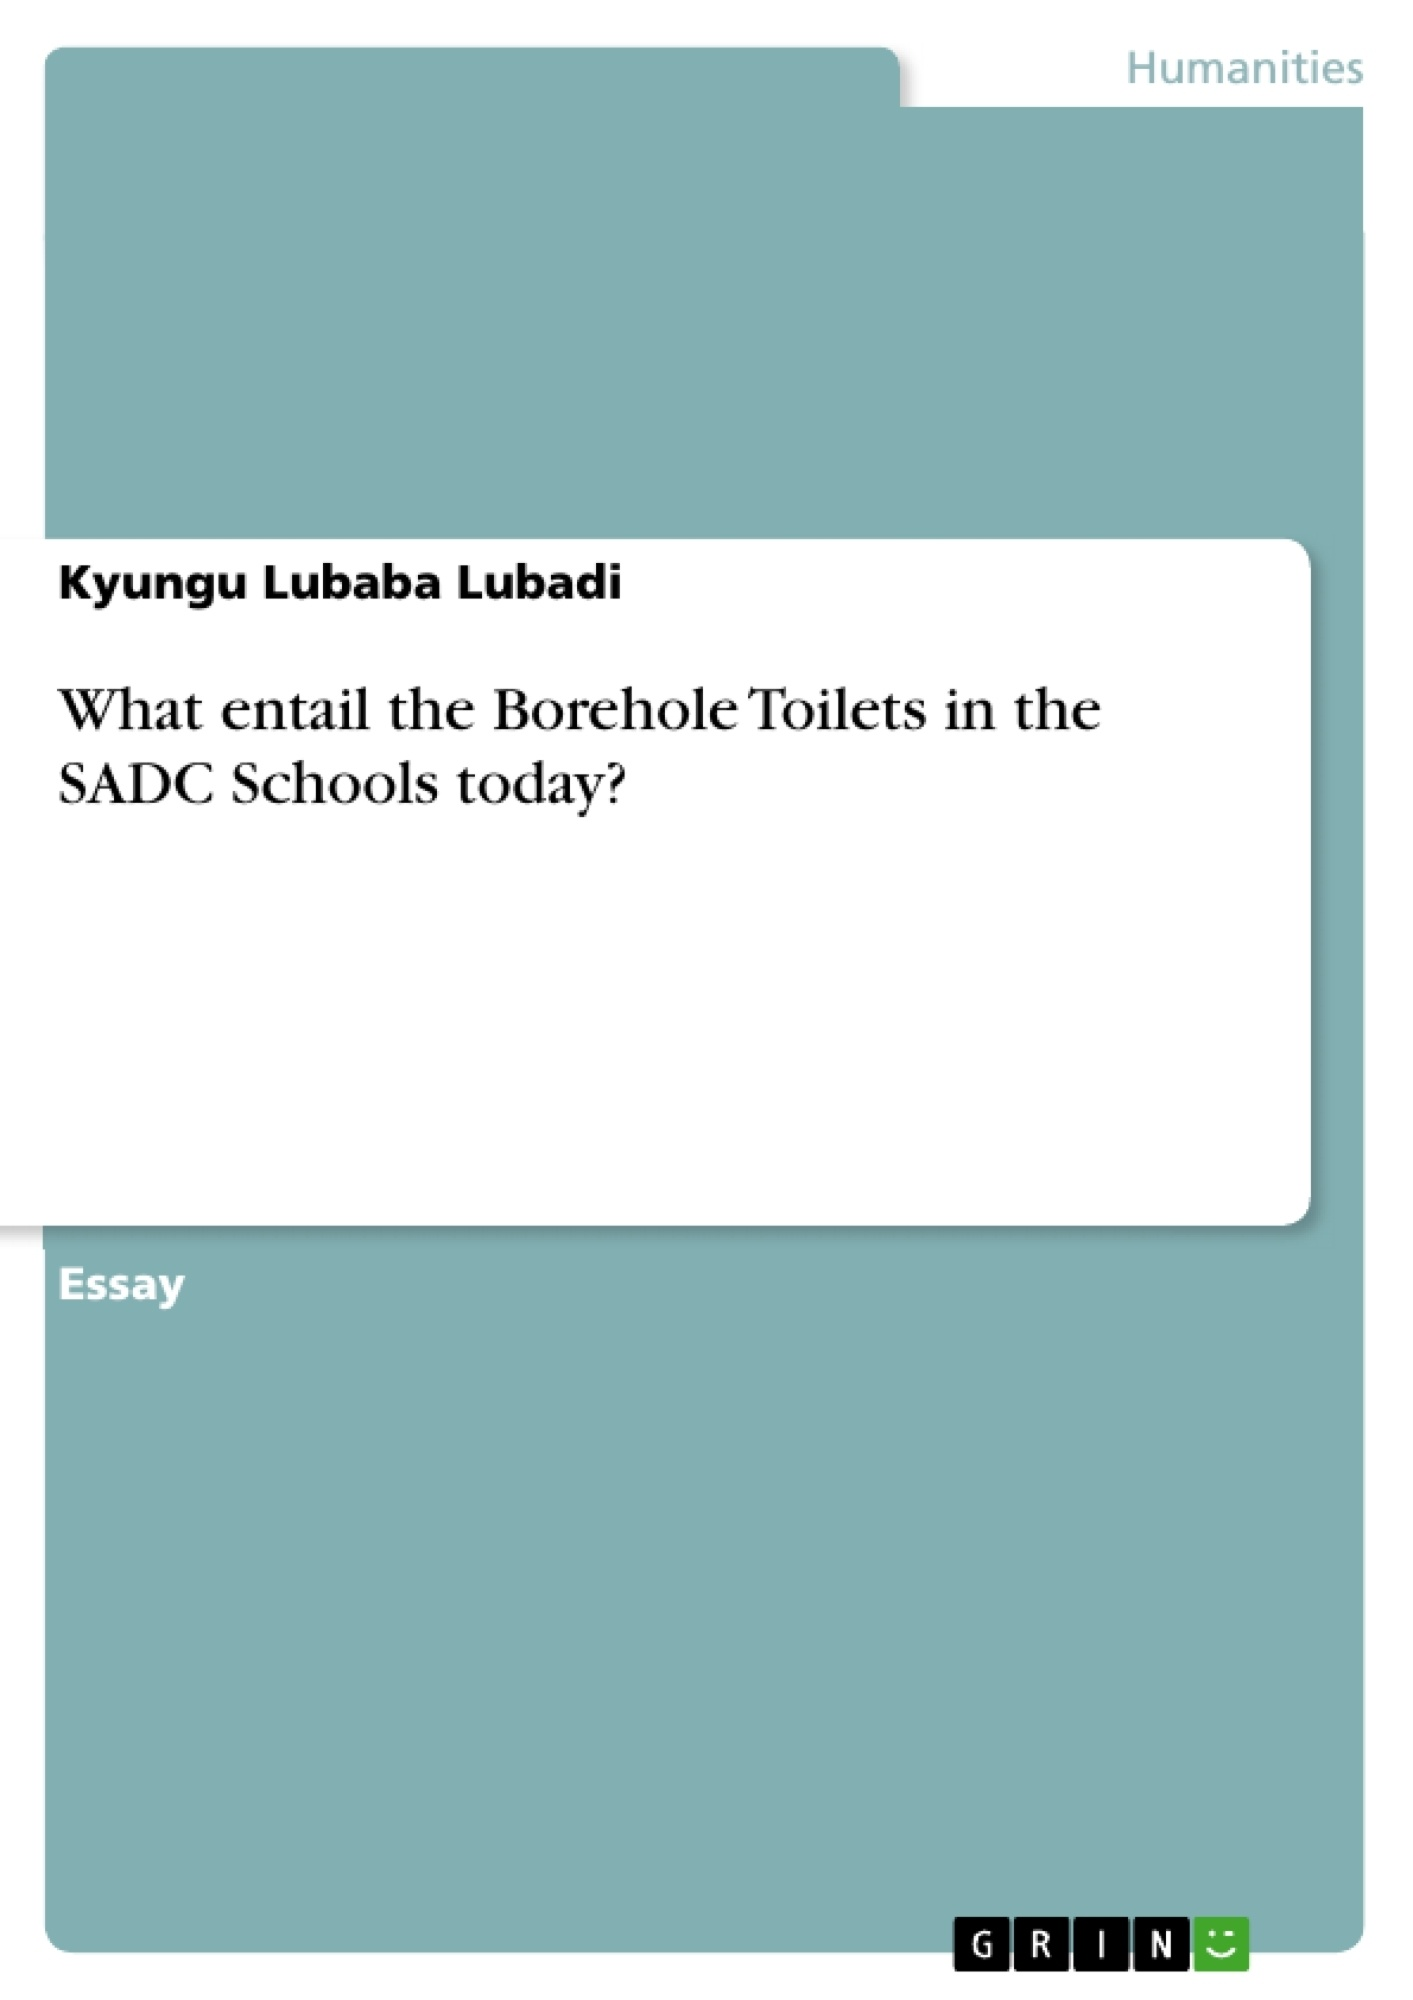 Title: What entail the Borehole Toilets in the SADC Schools today?